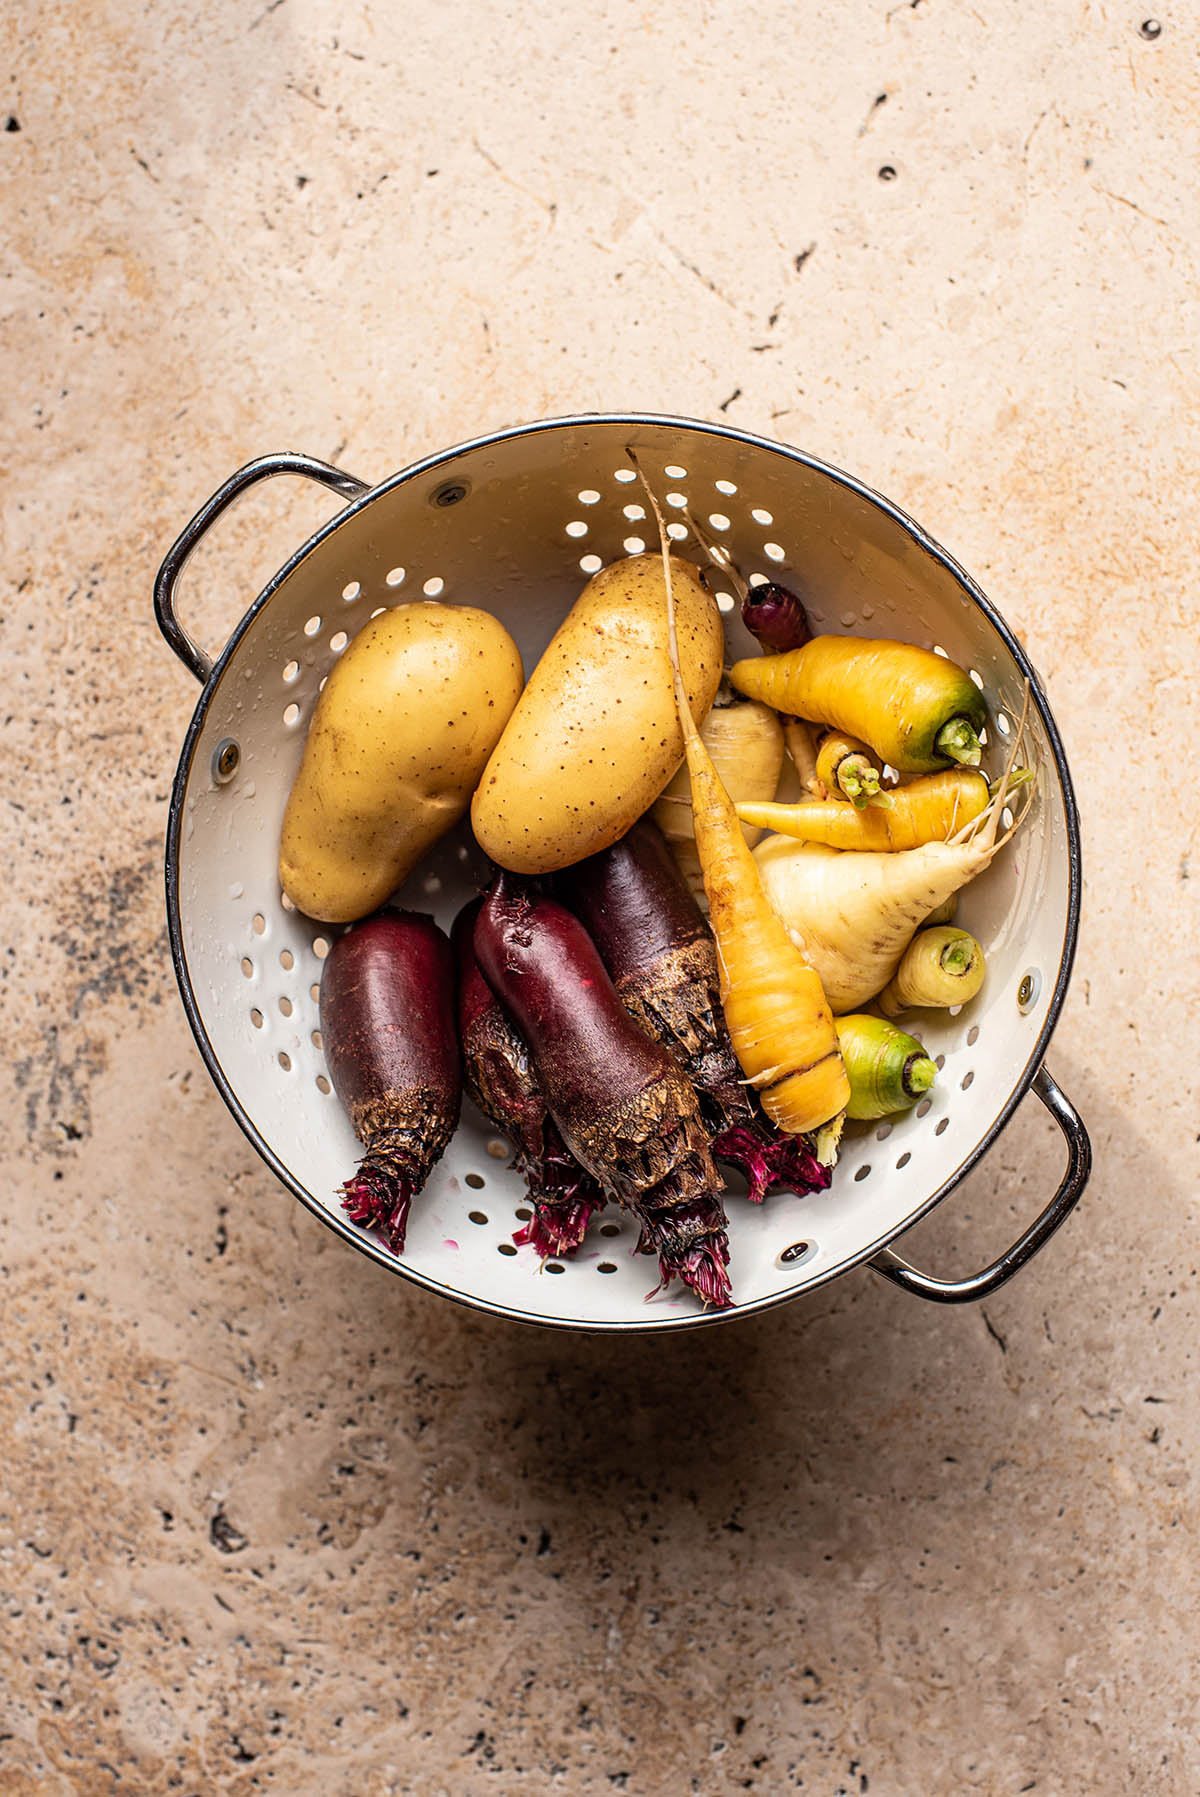 Potatoes, beets, and carrots in a large colander.